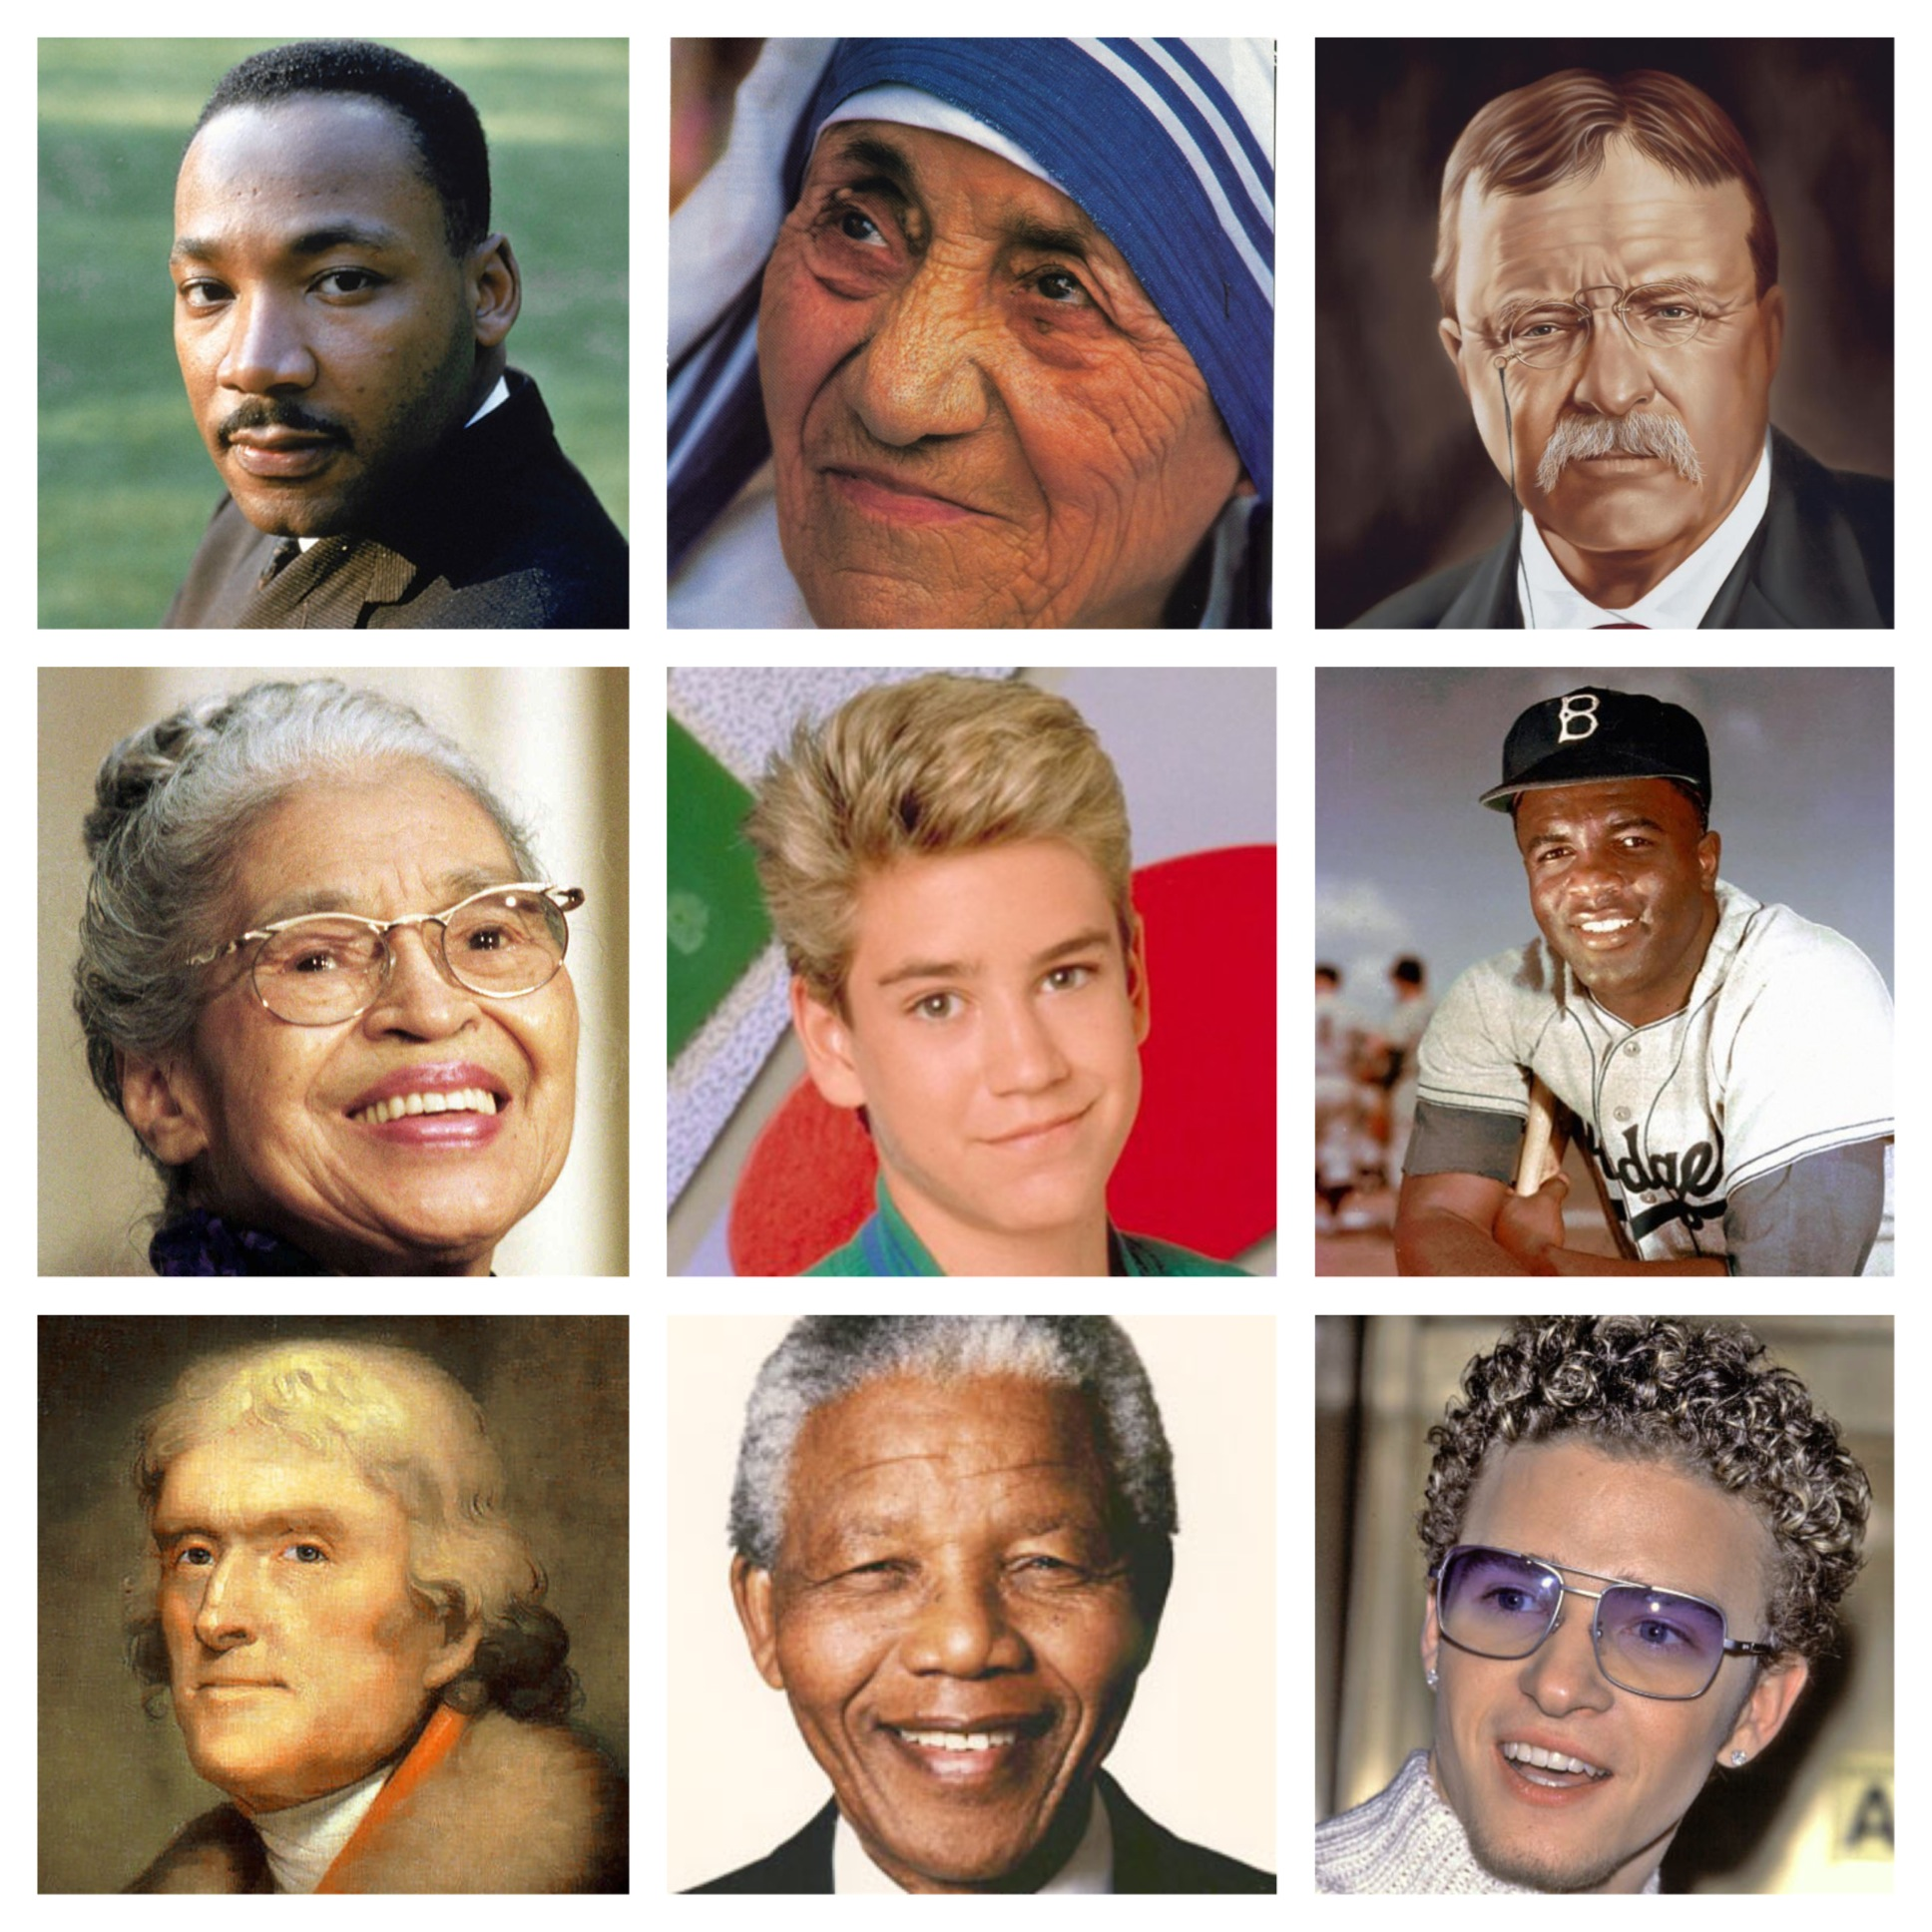 How are Nelson Mandela and Martin Luther king Jr. alike and different?